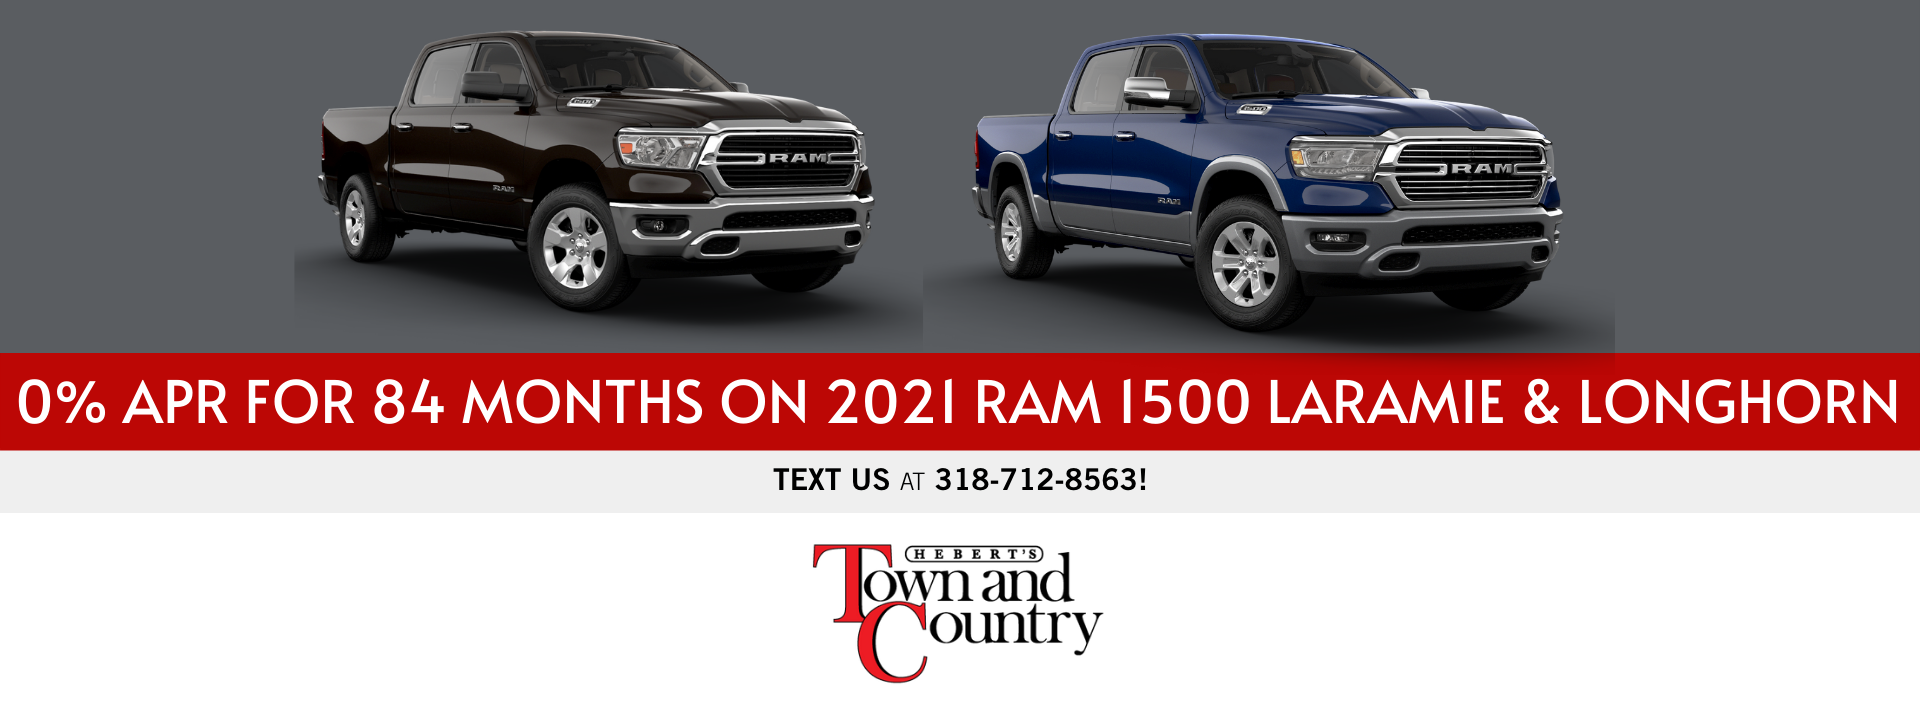 0% APR for 84 Months on 2021 Ram 1500 Laramie and Longhorn